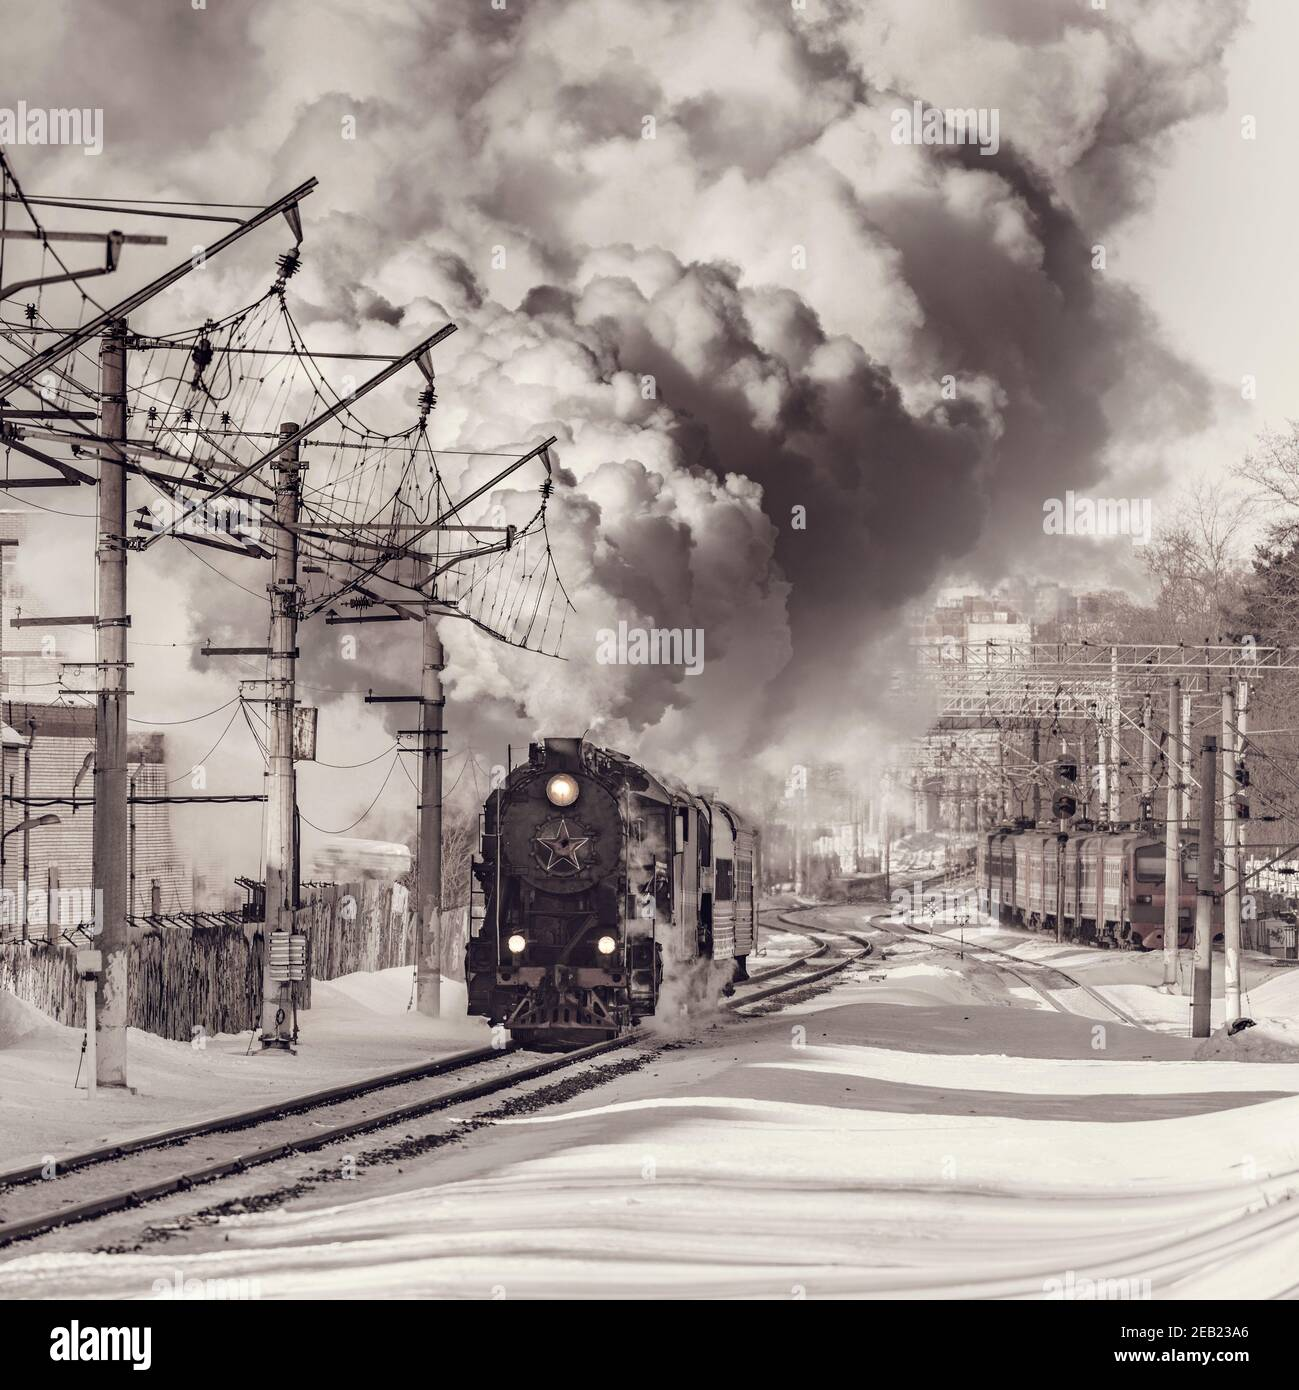 Korolev, Russia - February 23, 2019: Retro train moves at winter day time. Stock Photo